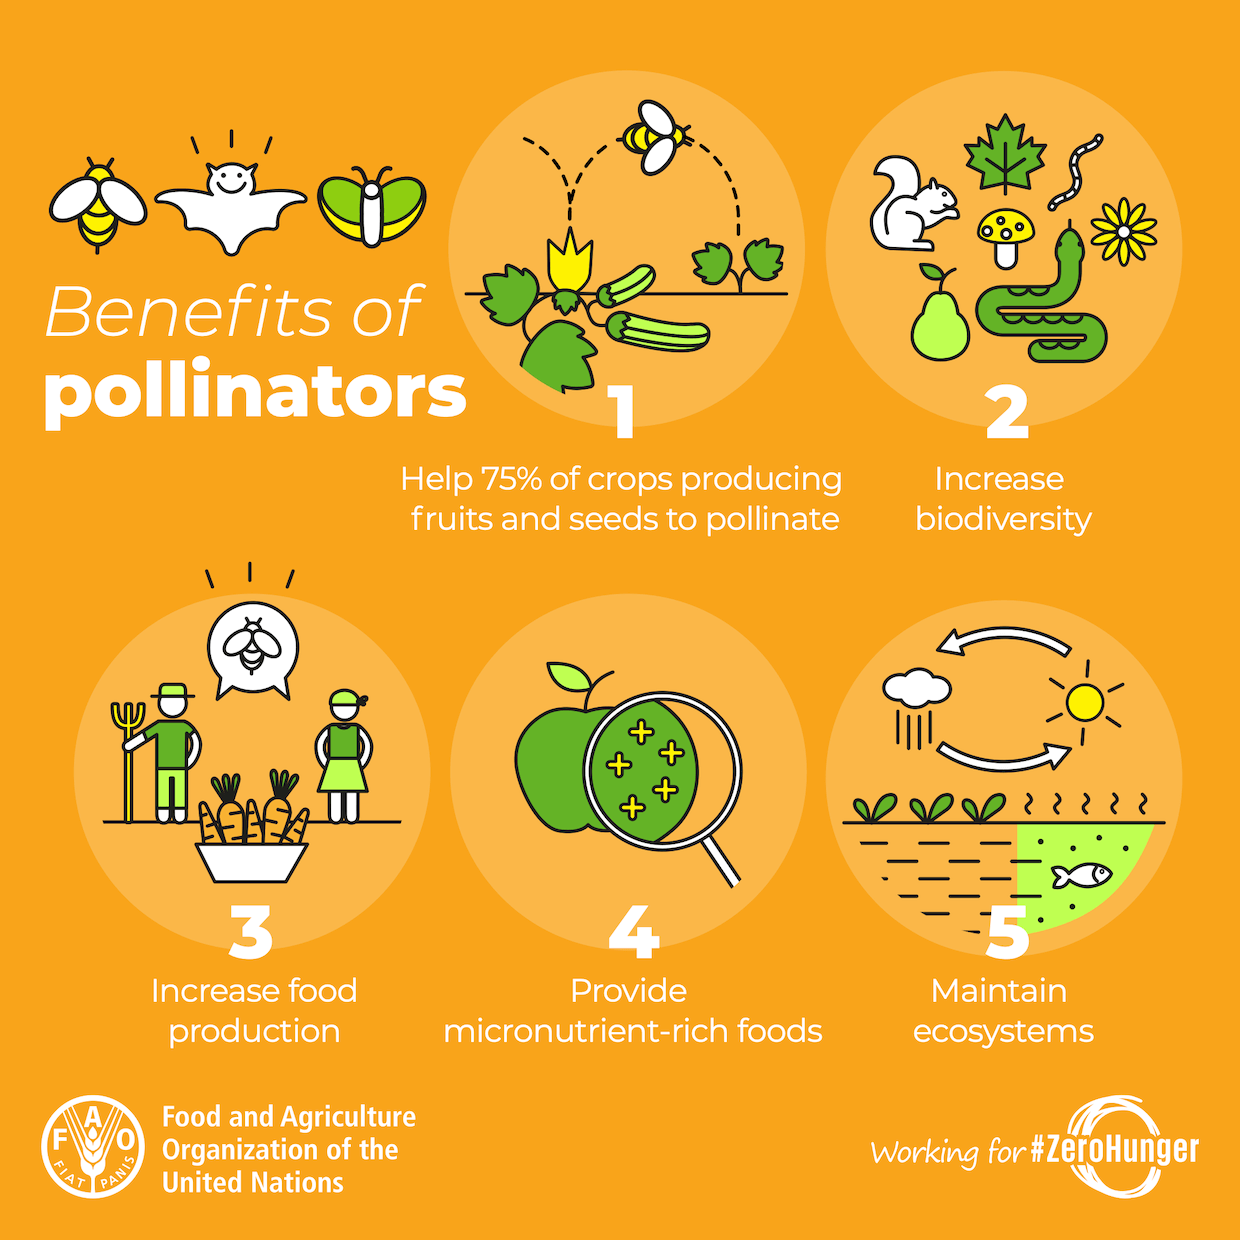 Benefits of pollinators graphic for World Bee Day